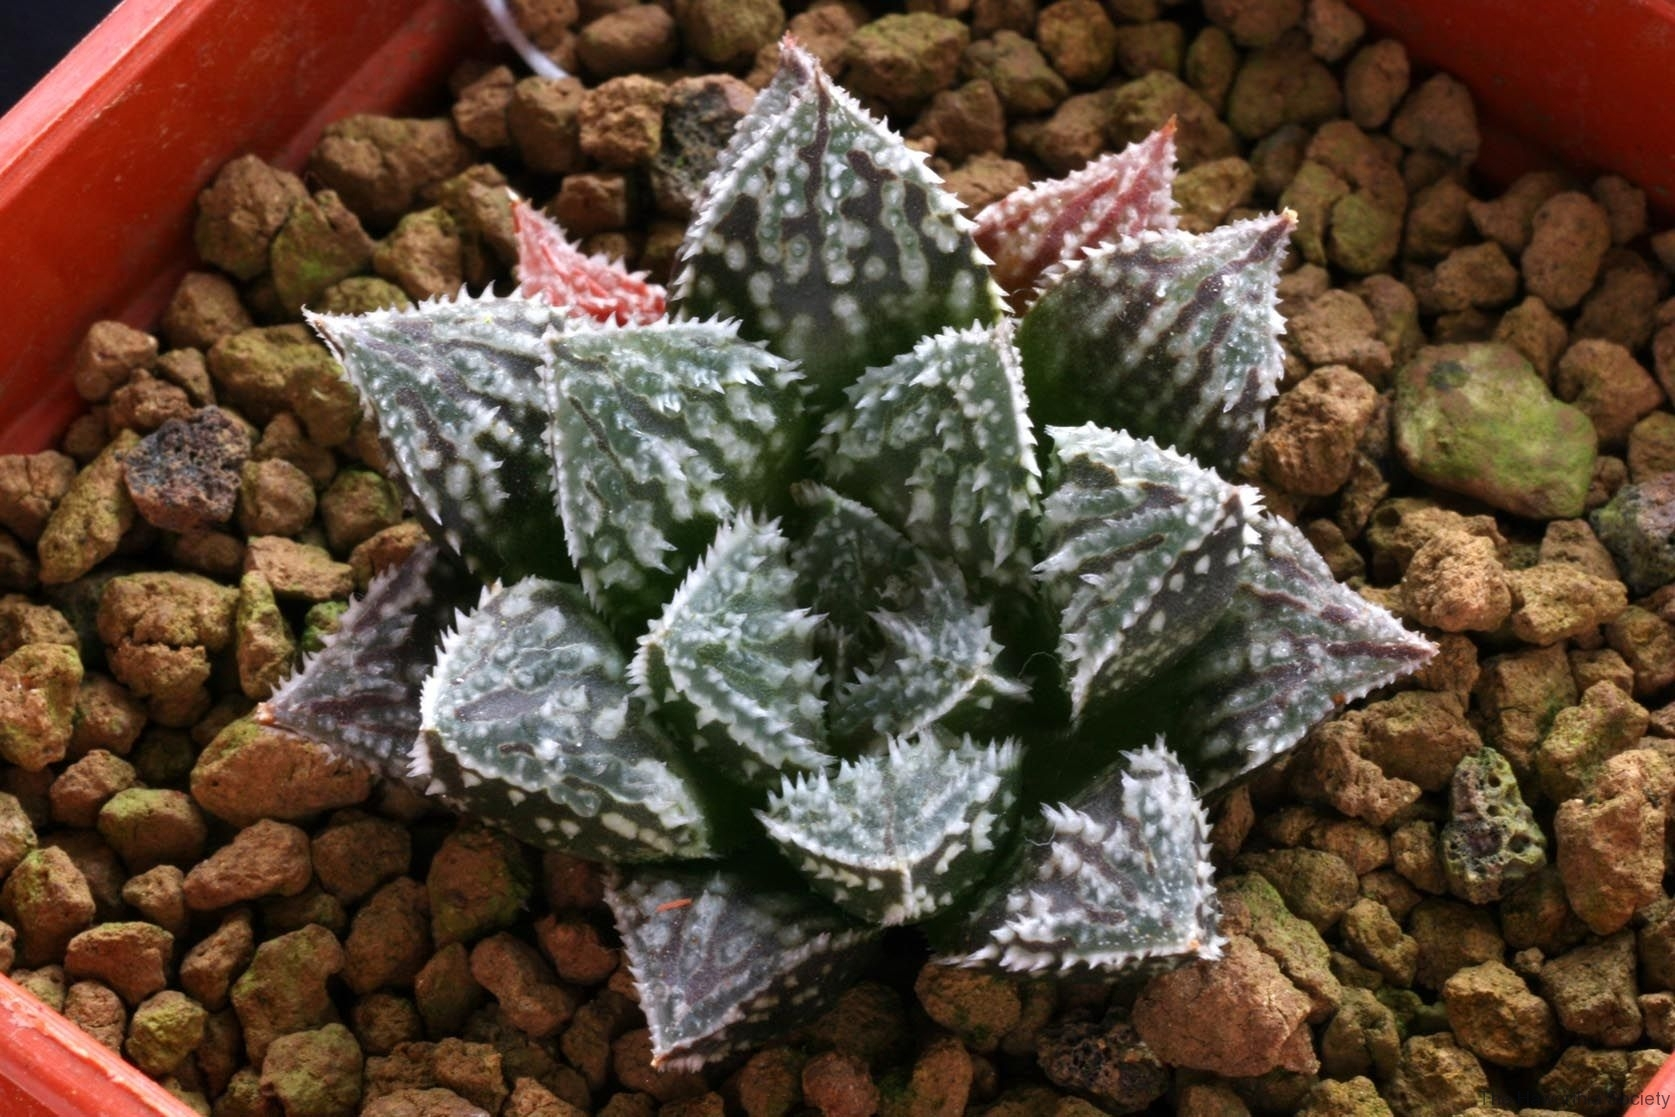 Haworthia 'Kegani' x emelyae v.major Ham2584 My hybrid